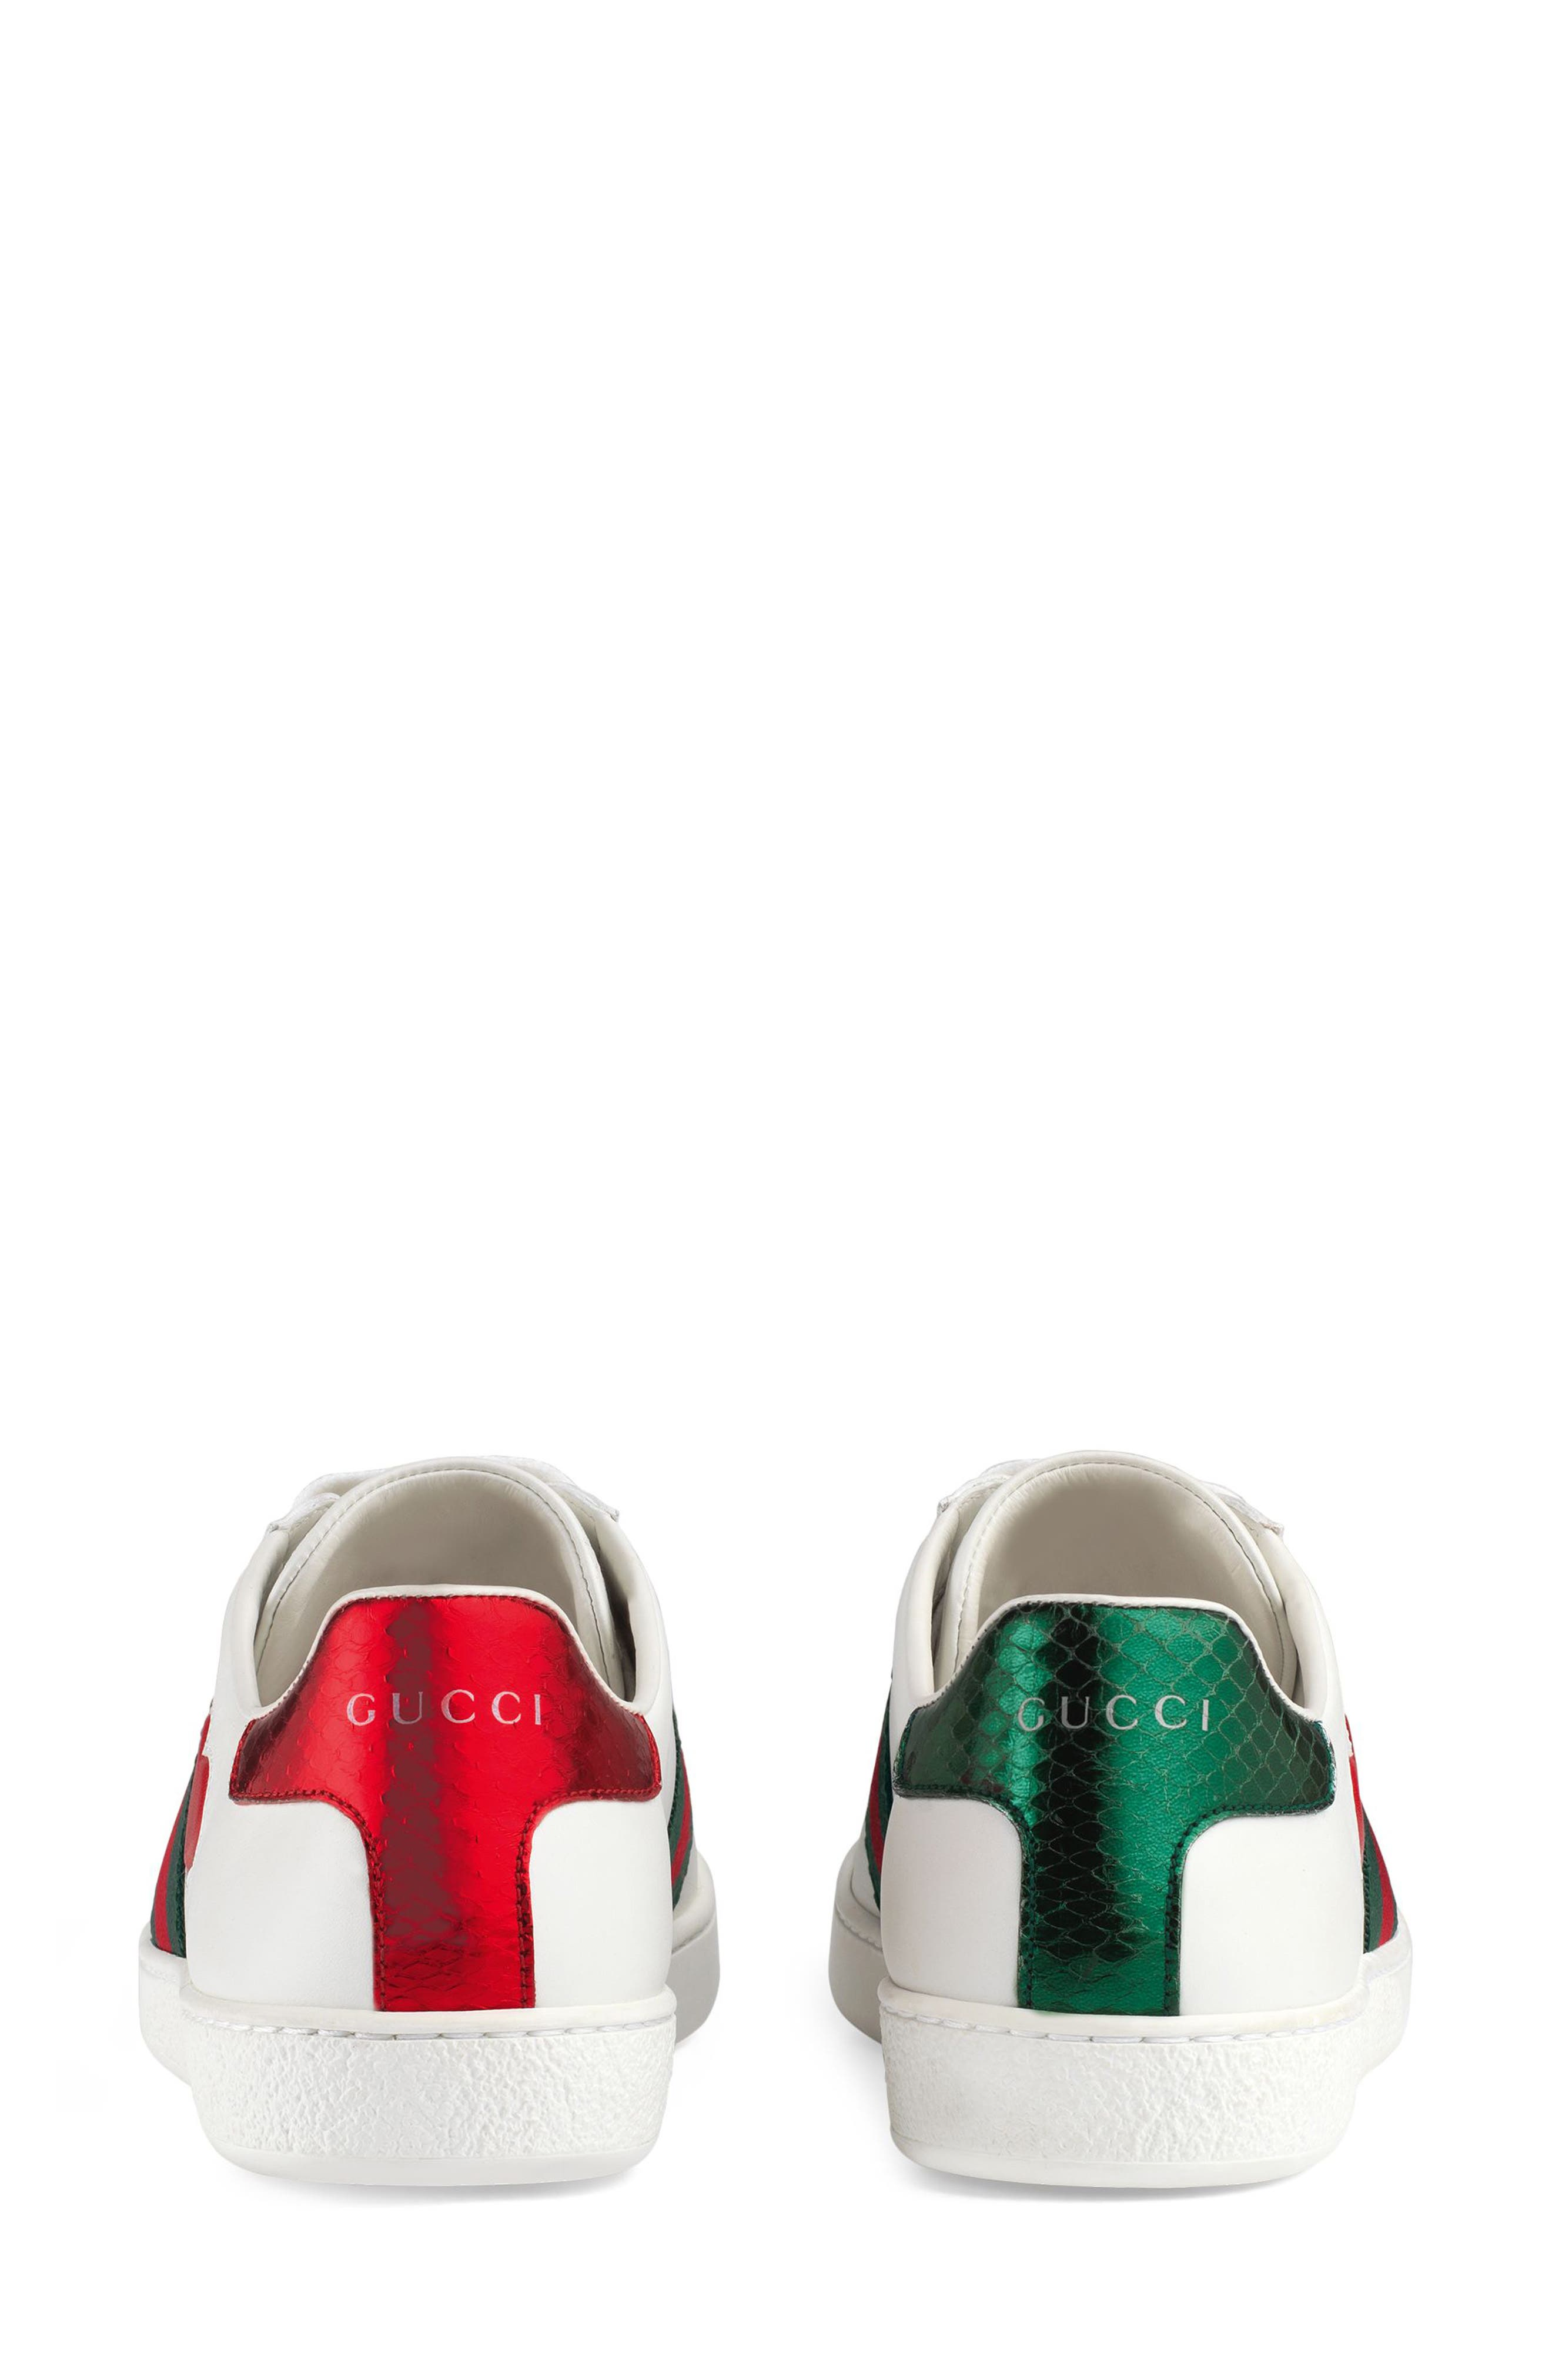 GUCCI,                             New Ace Heart Sneaker,                             Alternate thumbnail 5, color,                             WHITE